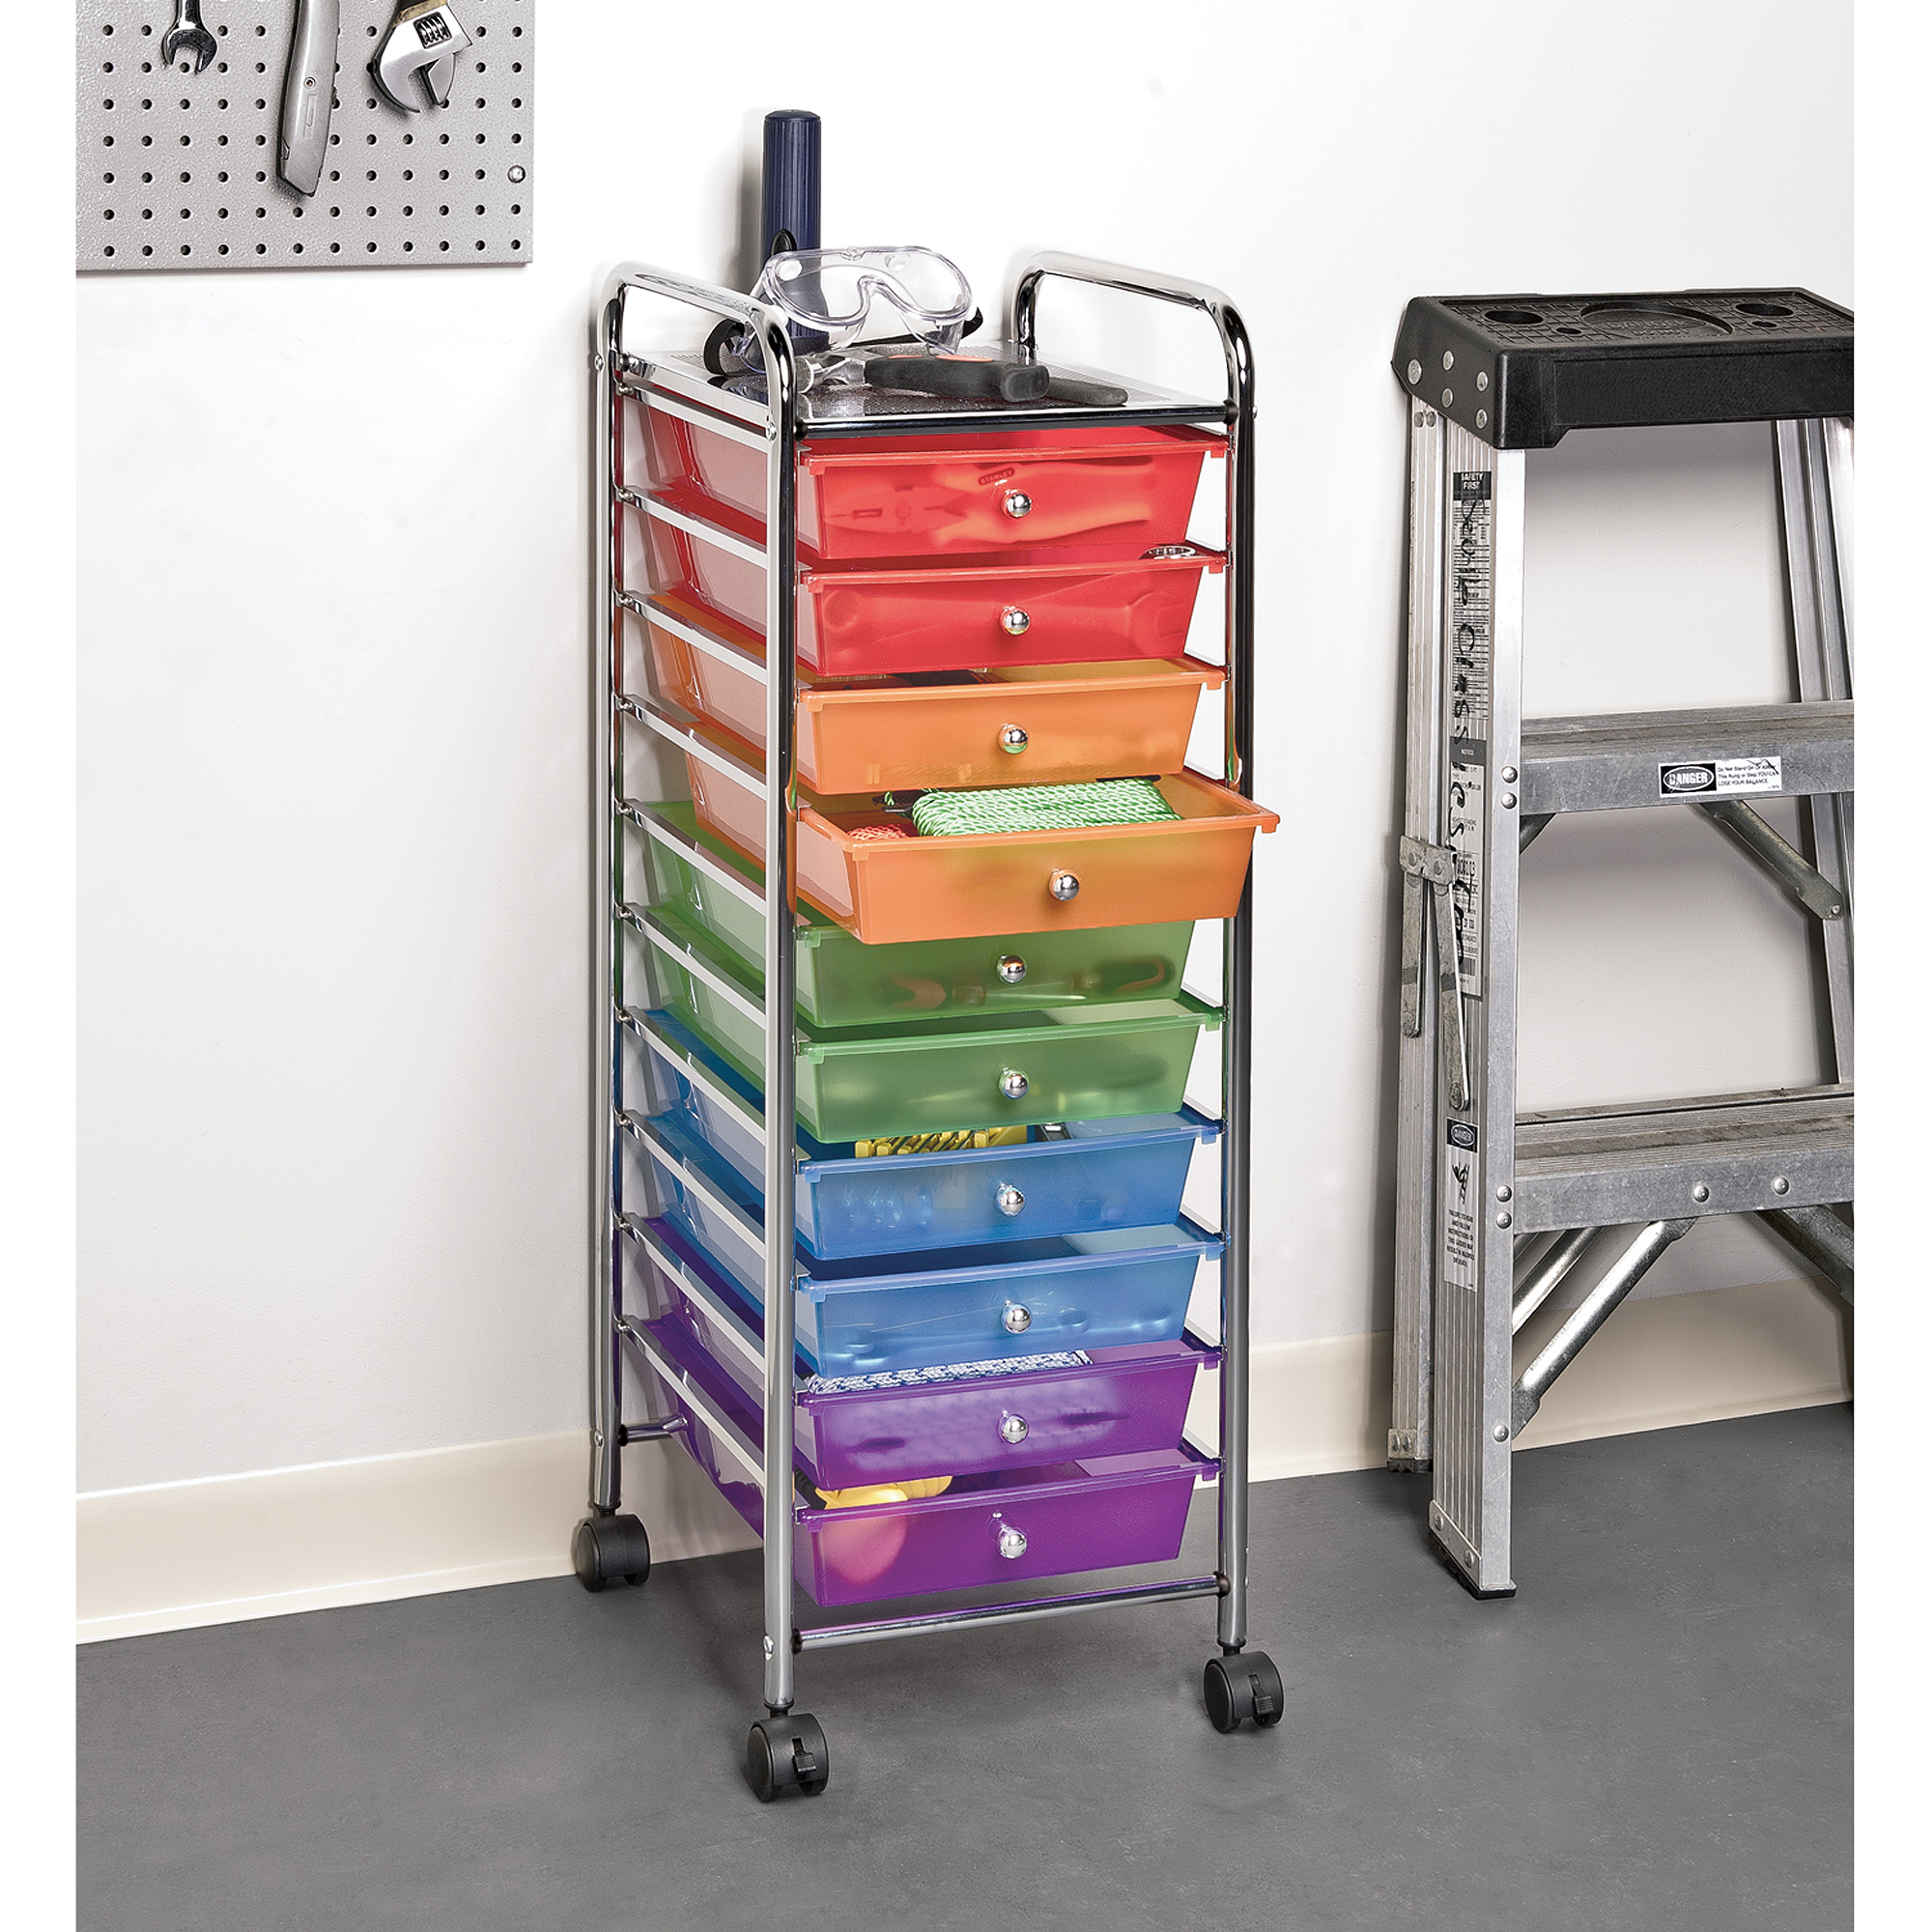 Perfect 10 Drawer Organizer Cart W/ Wheels, Pearl Multi Color By Seville Classics    Walmart.com